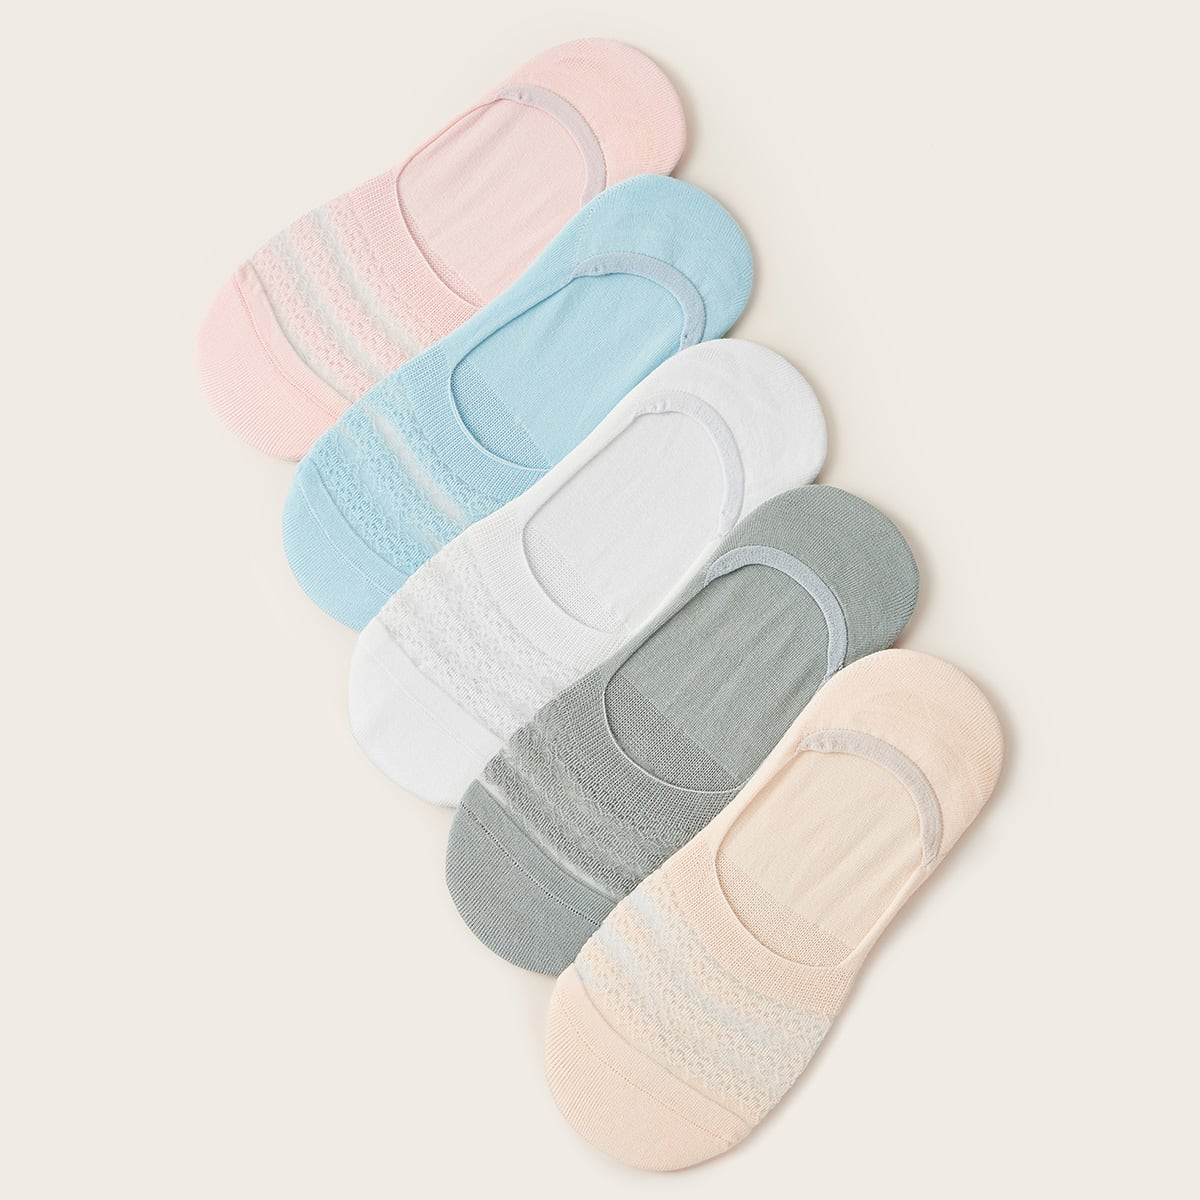 5pairs Contrast Mesh Invisible Socks